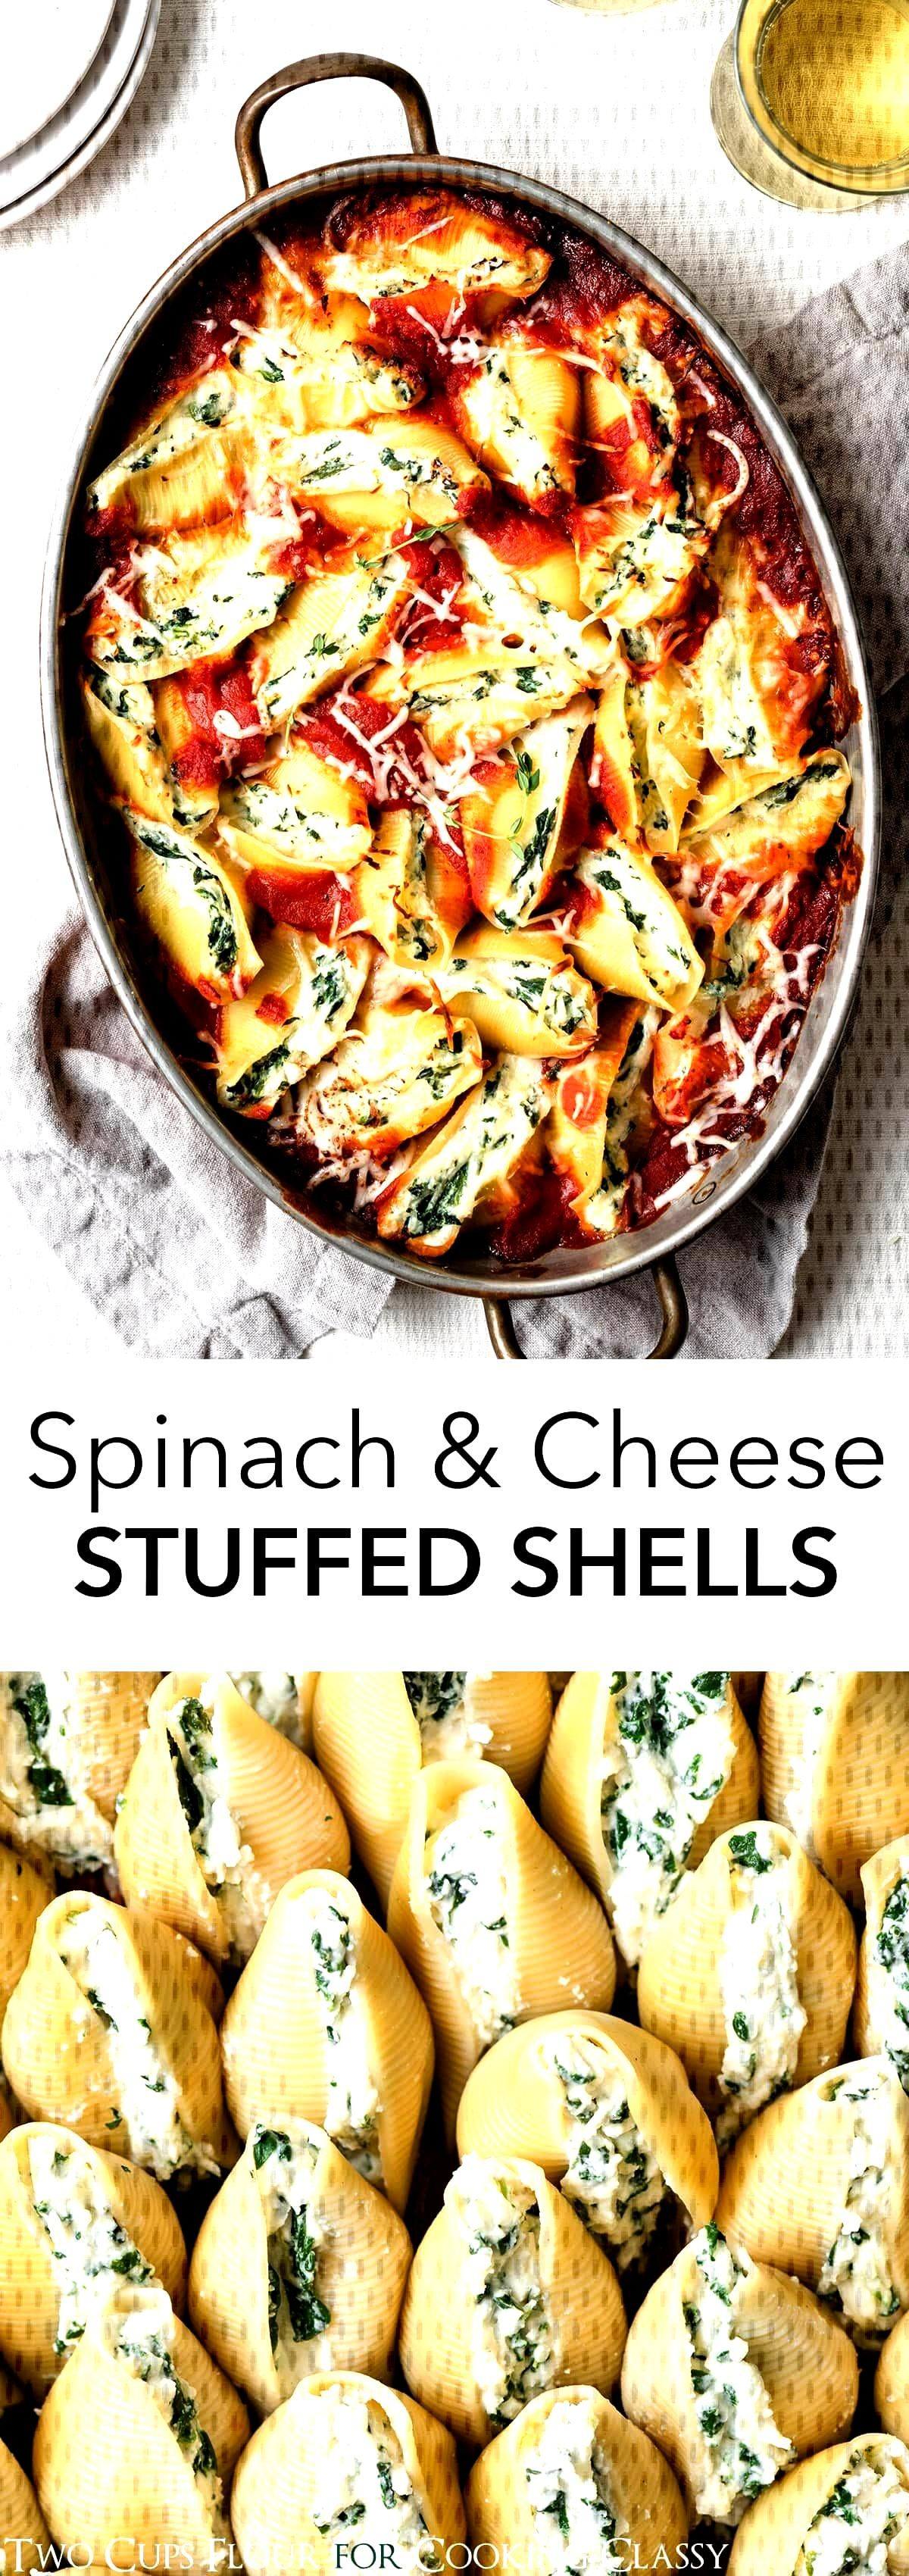 Spinach and Cheese Stuffed Shells - Hearty stuffed shells made with three cheeses, spinach, herbs,